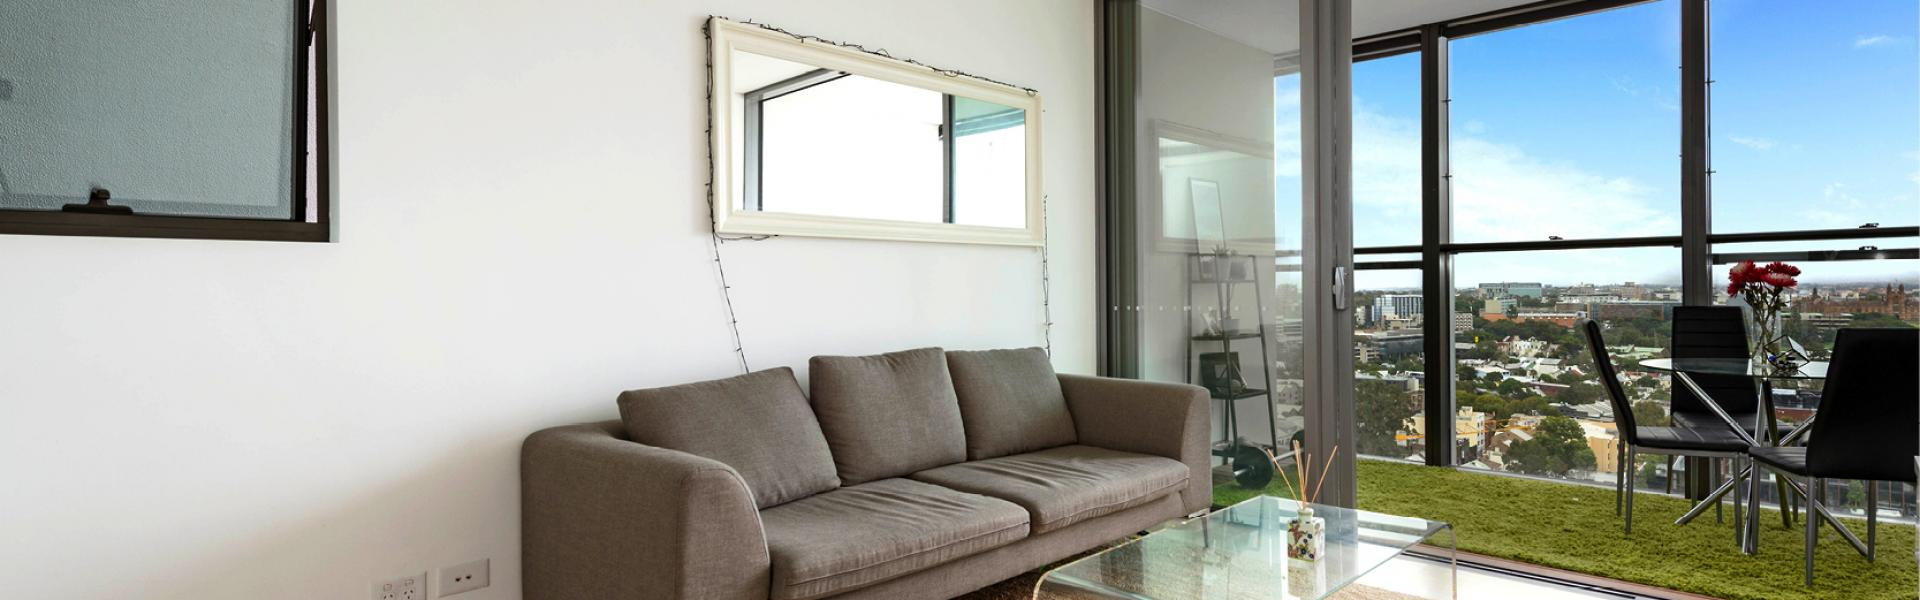 FURNISHED 1 BED APARTMENT WITH UNINTERRUPTED VIEWS